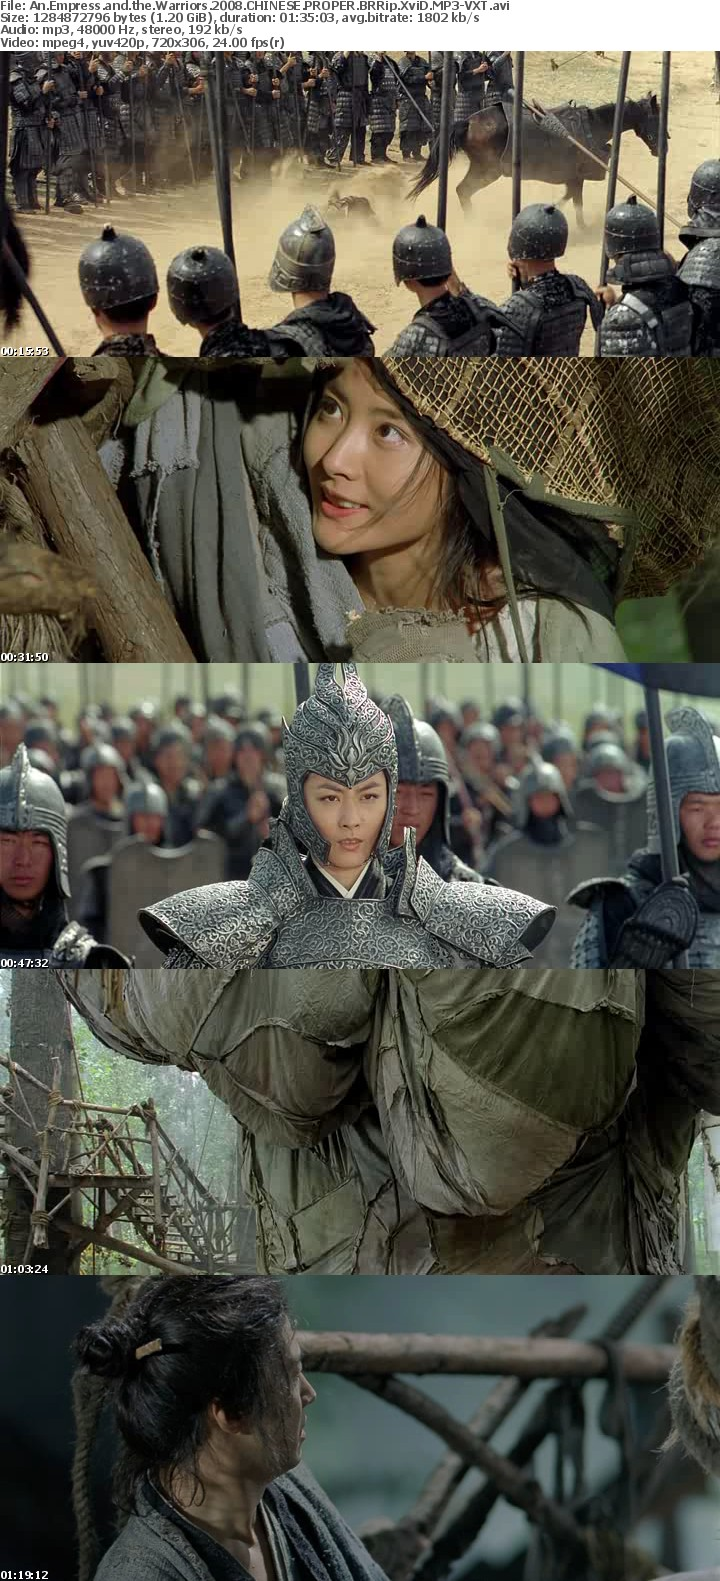 An Empress and the Warriors 2008 CHINESE PROPER BRRip XviD MP3-VXT